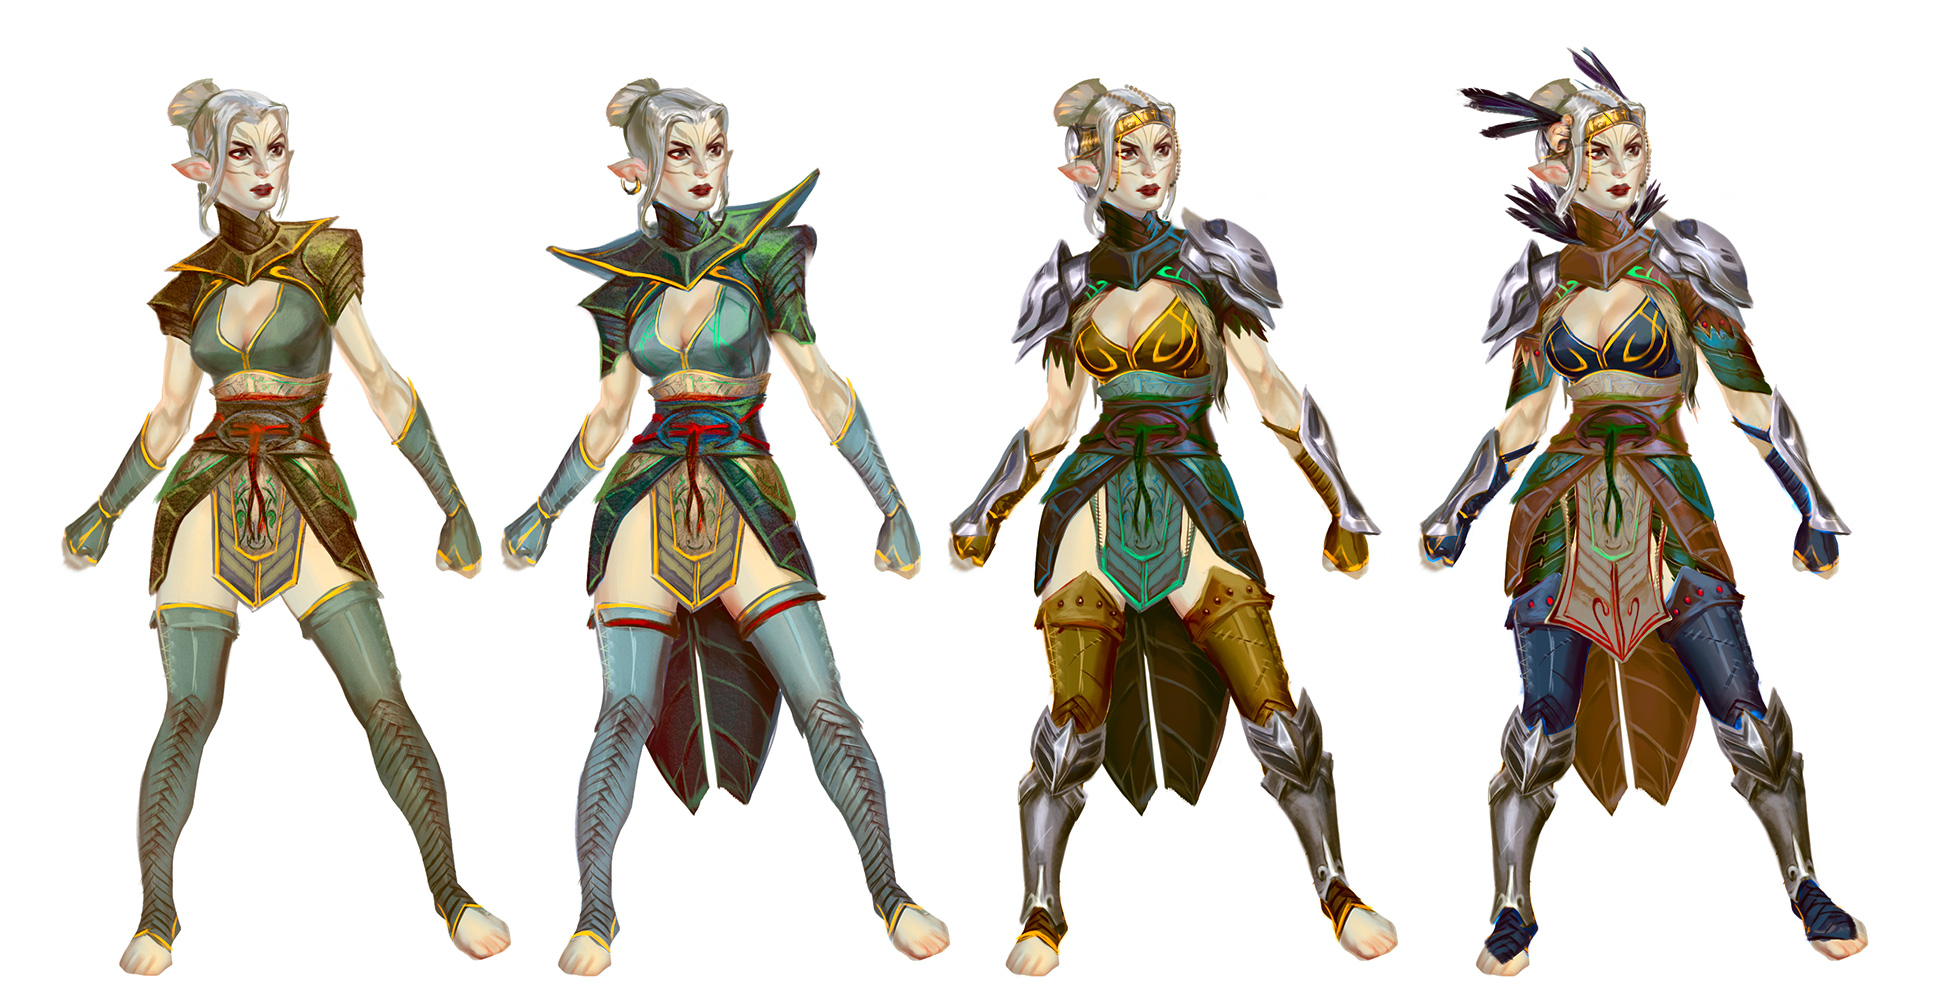 Heroes of Dragon Age elf keeper concept by anotherdamian on DeviantArt